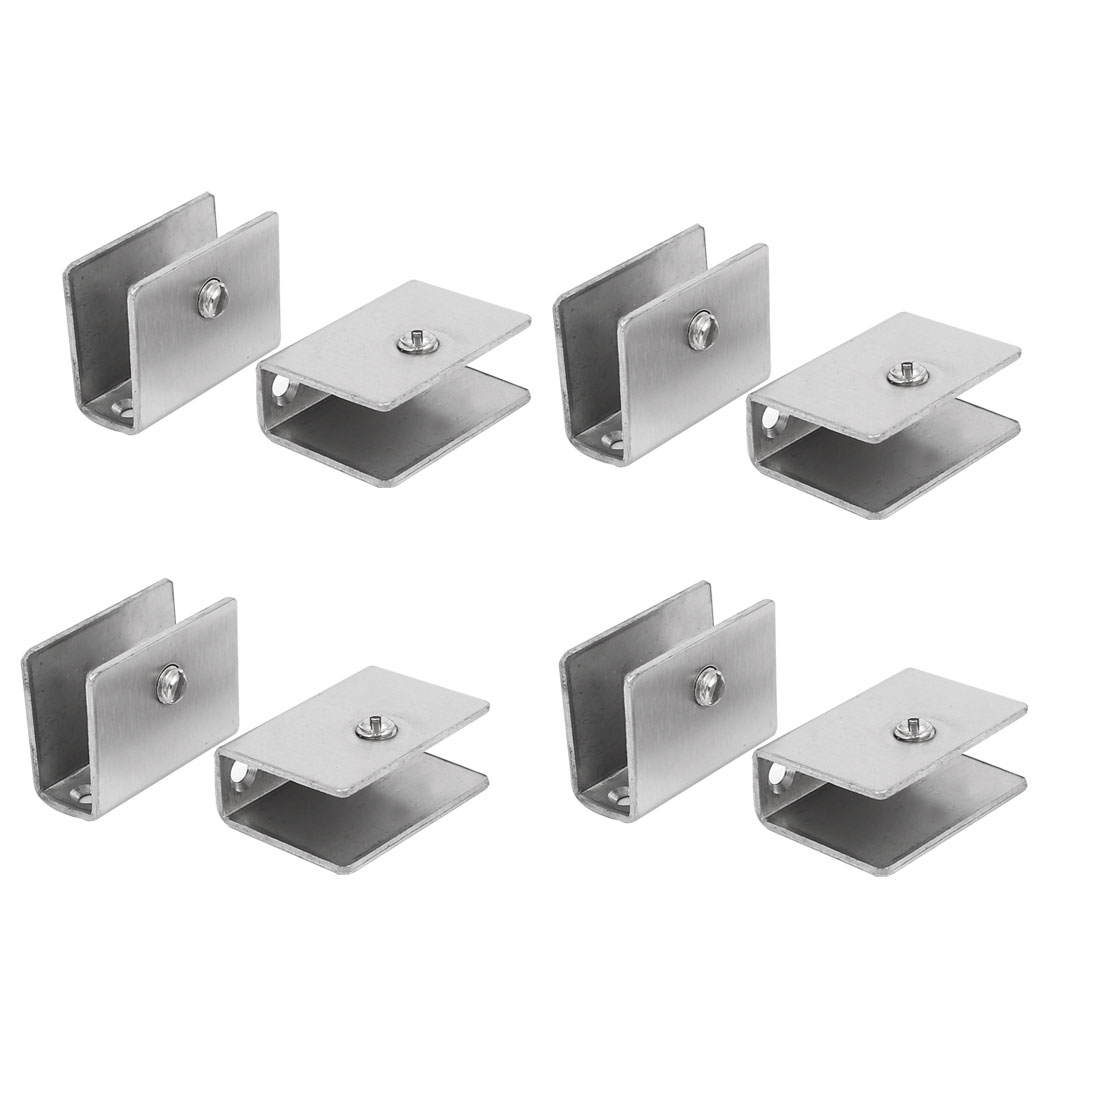 10mm-12mm Thickness Stainless Steel Rectangle Glass Shelf Clamp Clip Holder 8pcs